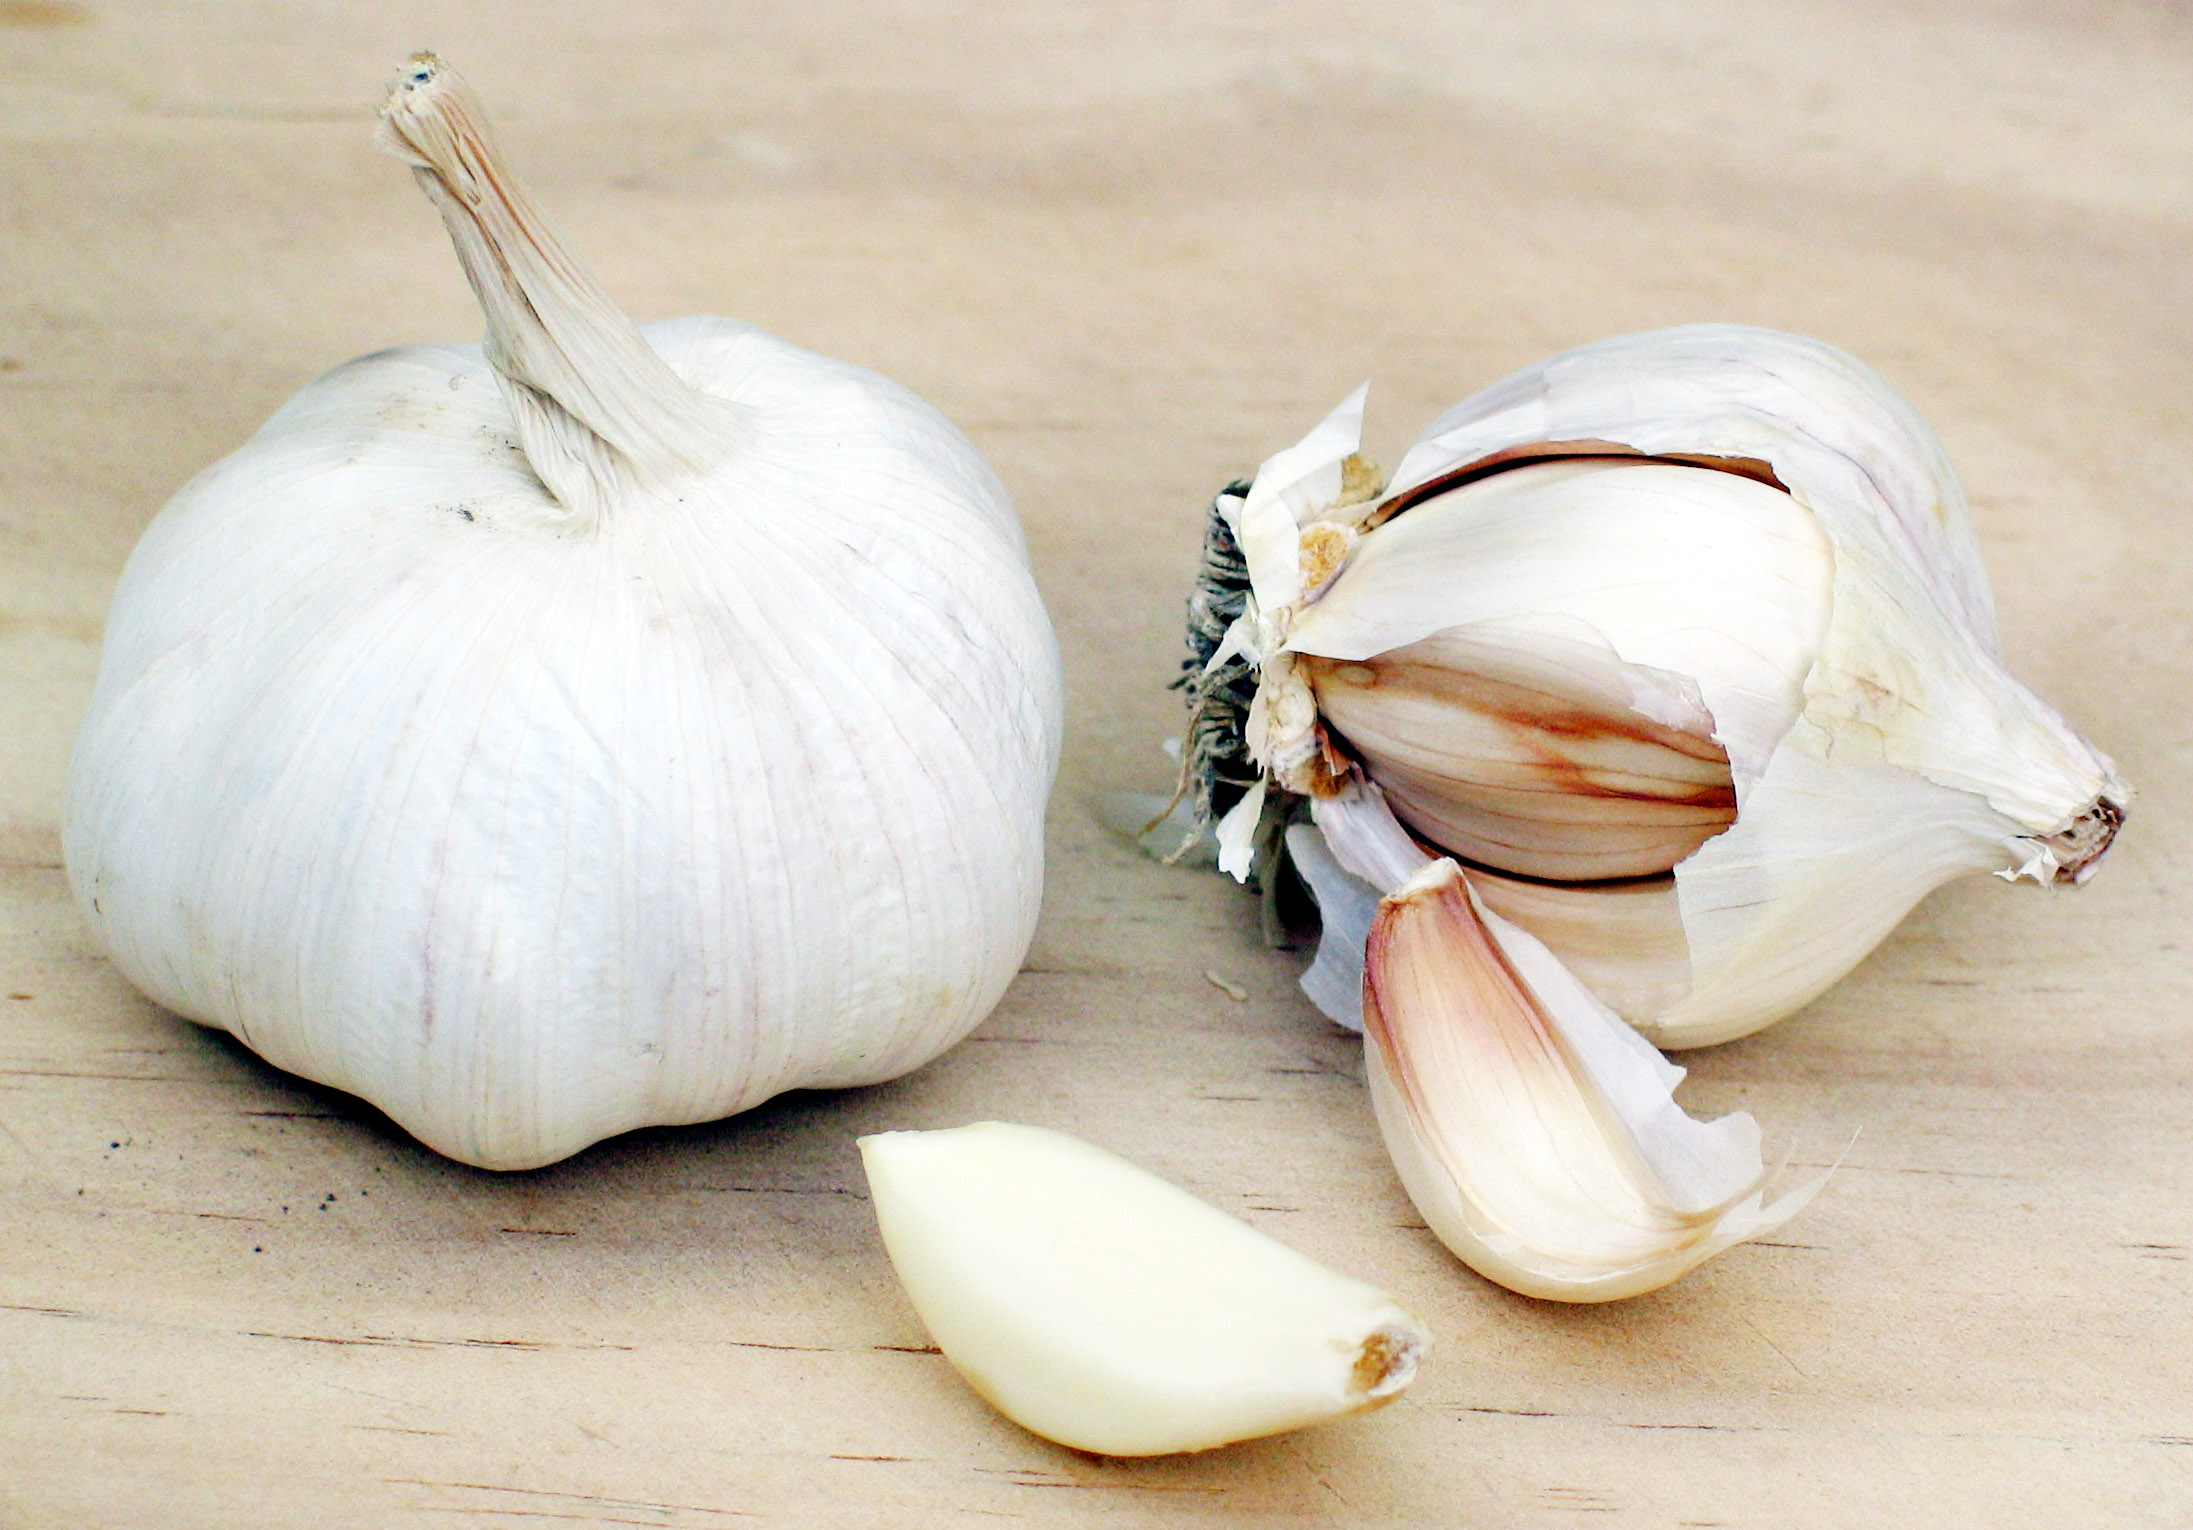 http://dic.academic.ru/pictures/wiki/files/71/Garlic.jpg